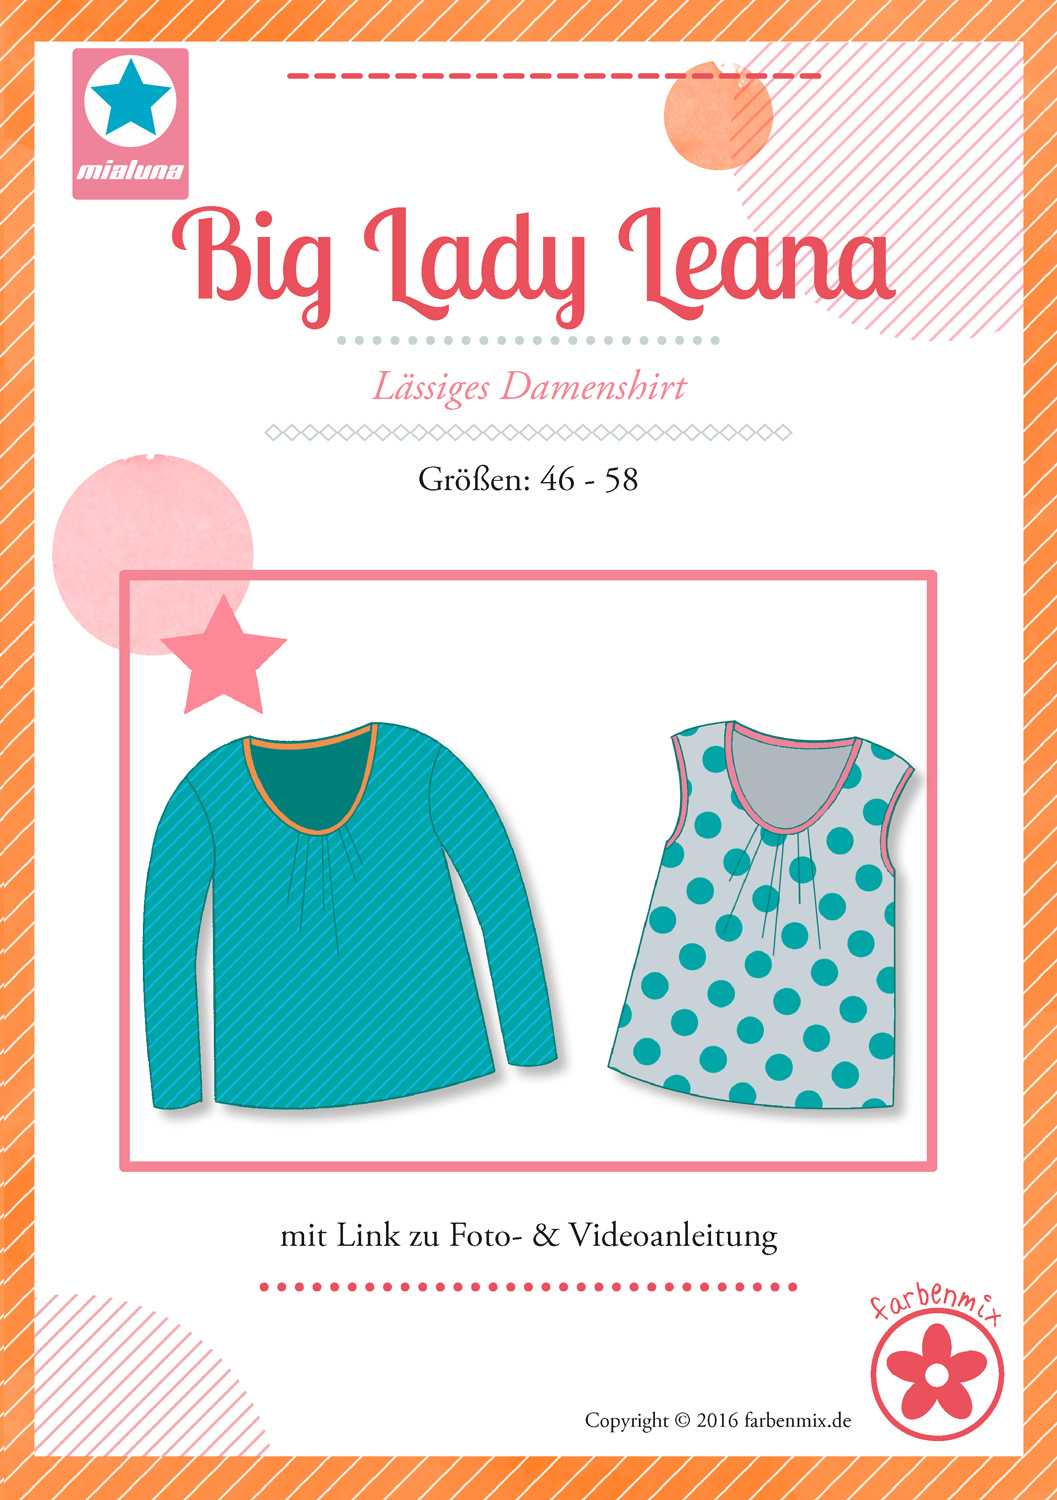 Big Lady Leana - XXL-Schnittmuster Sommertop